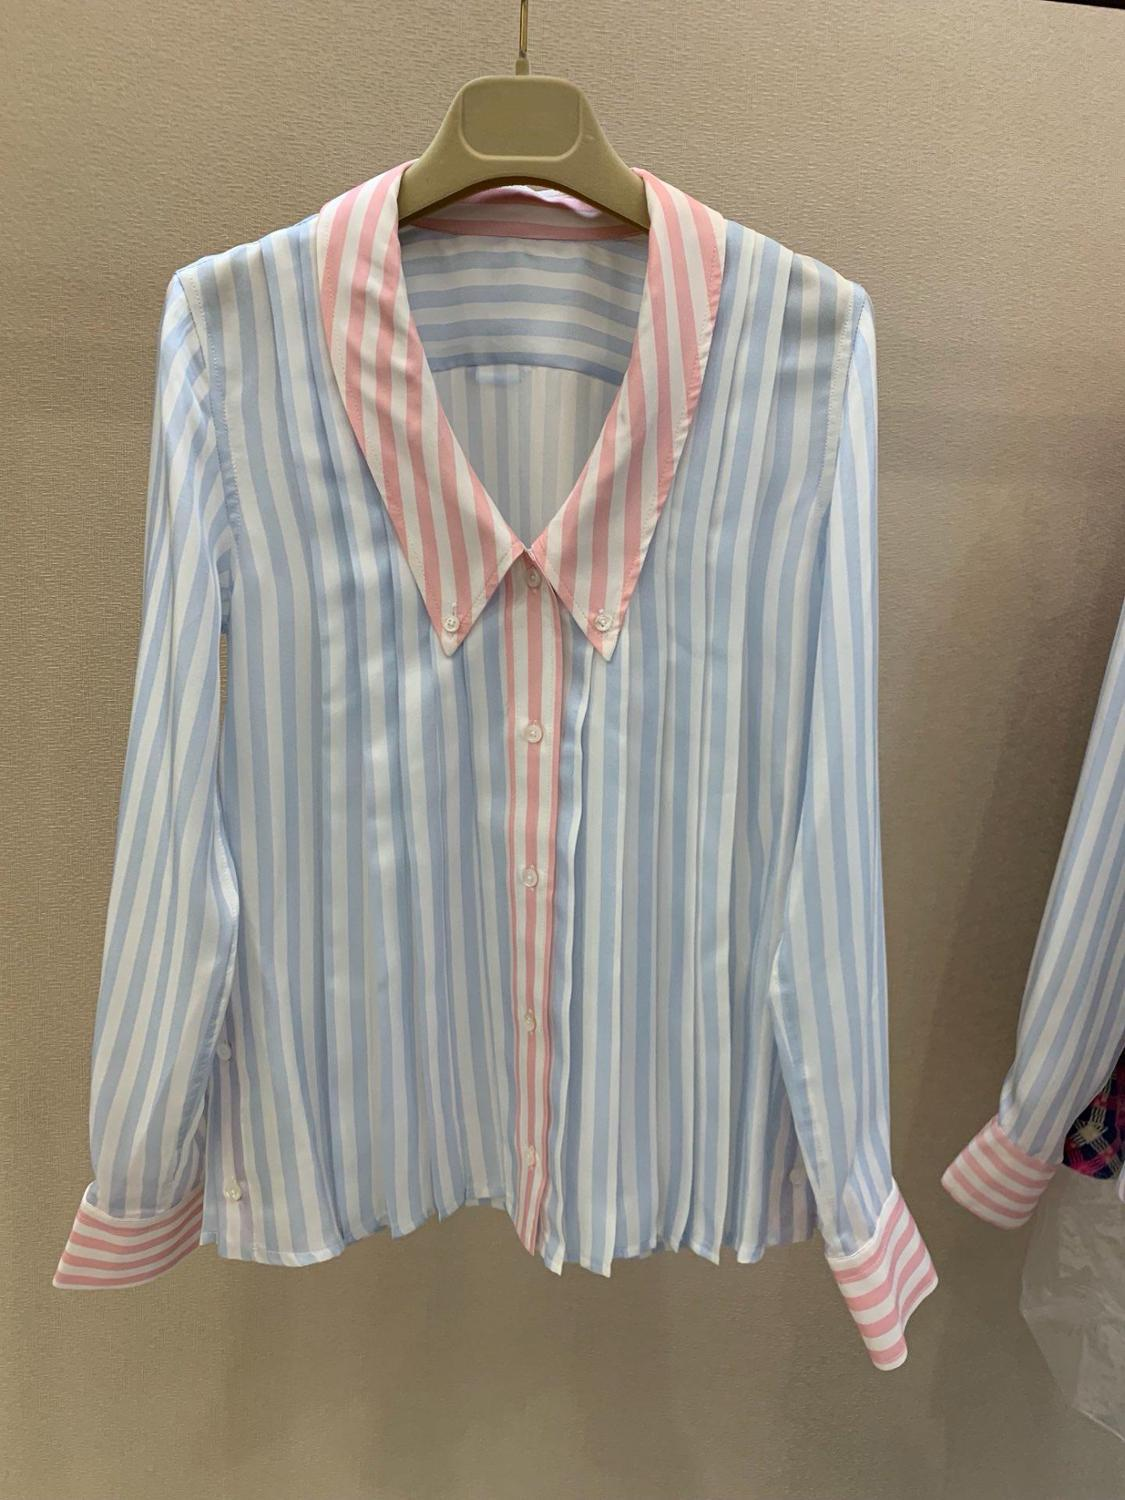 2019 new ladies fashion sexy long sleeve contrast striped shirt 0604